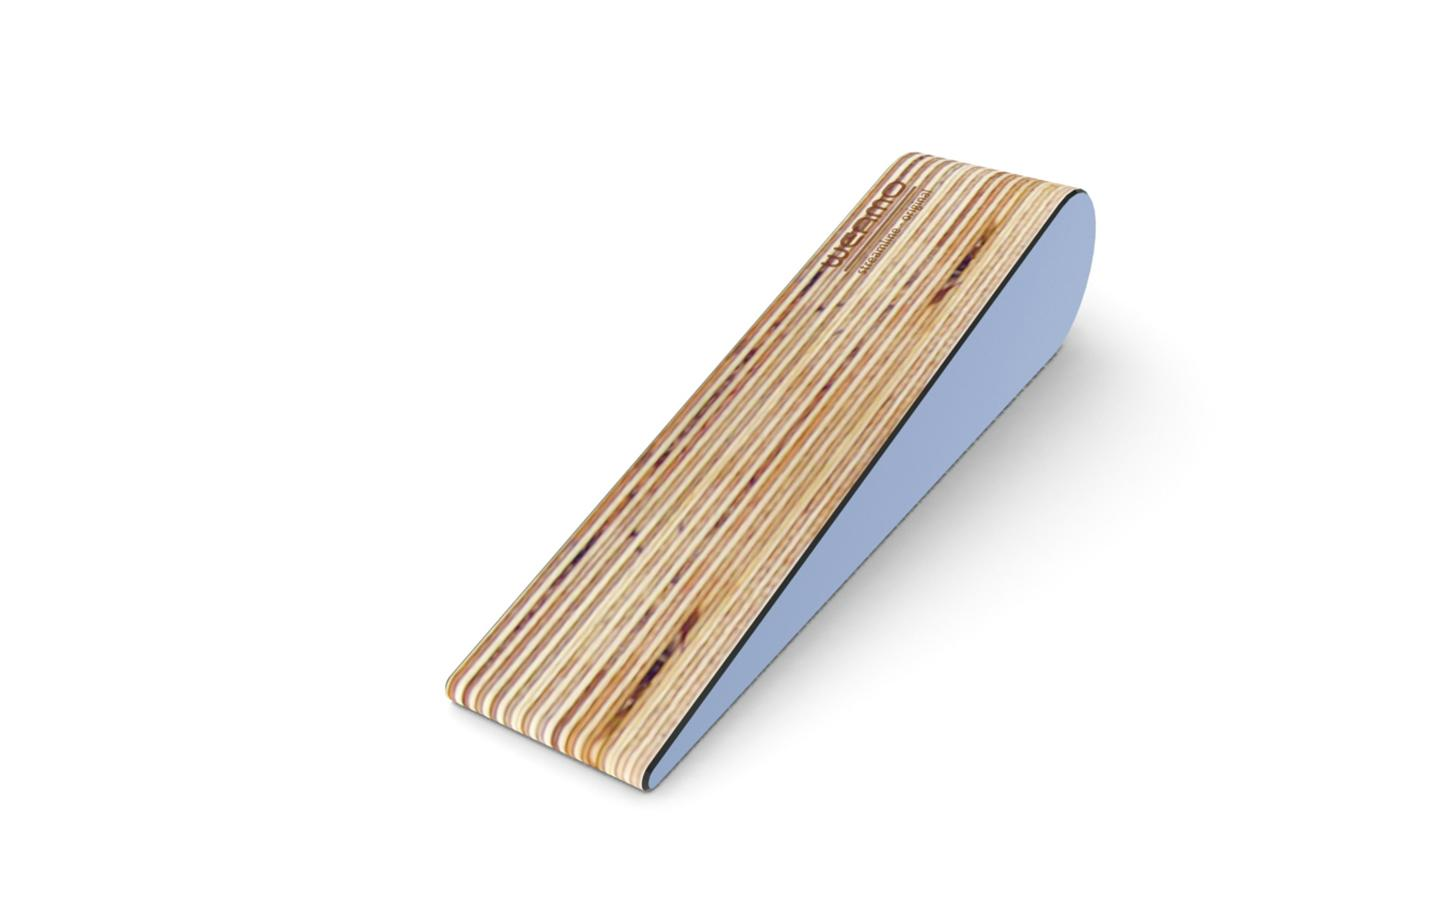 Streamline Original Doorstop - Breaking Wave Light Blue